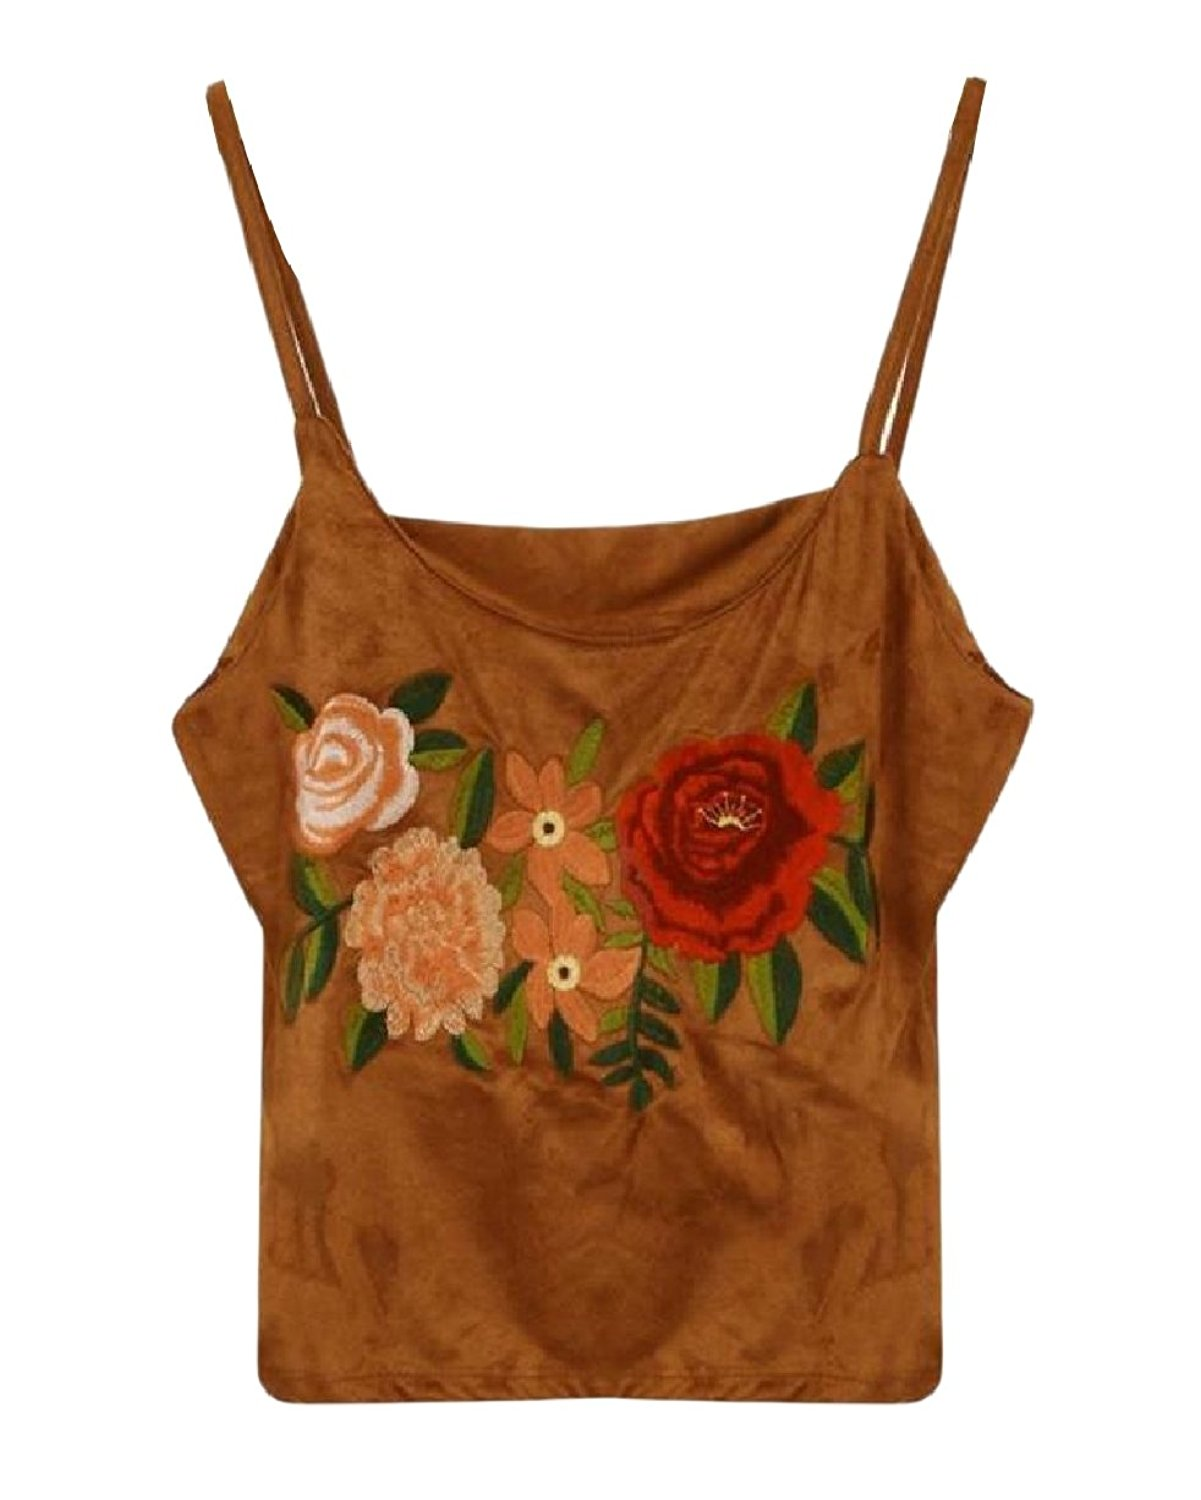 Zimaes-Women Embroidered All-Match Relaxed Sexy Fashion Tank Top Shirts